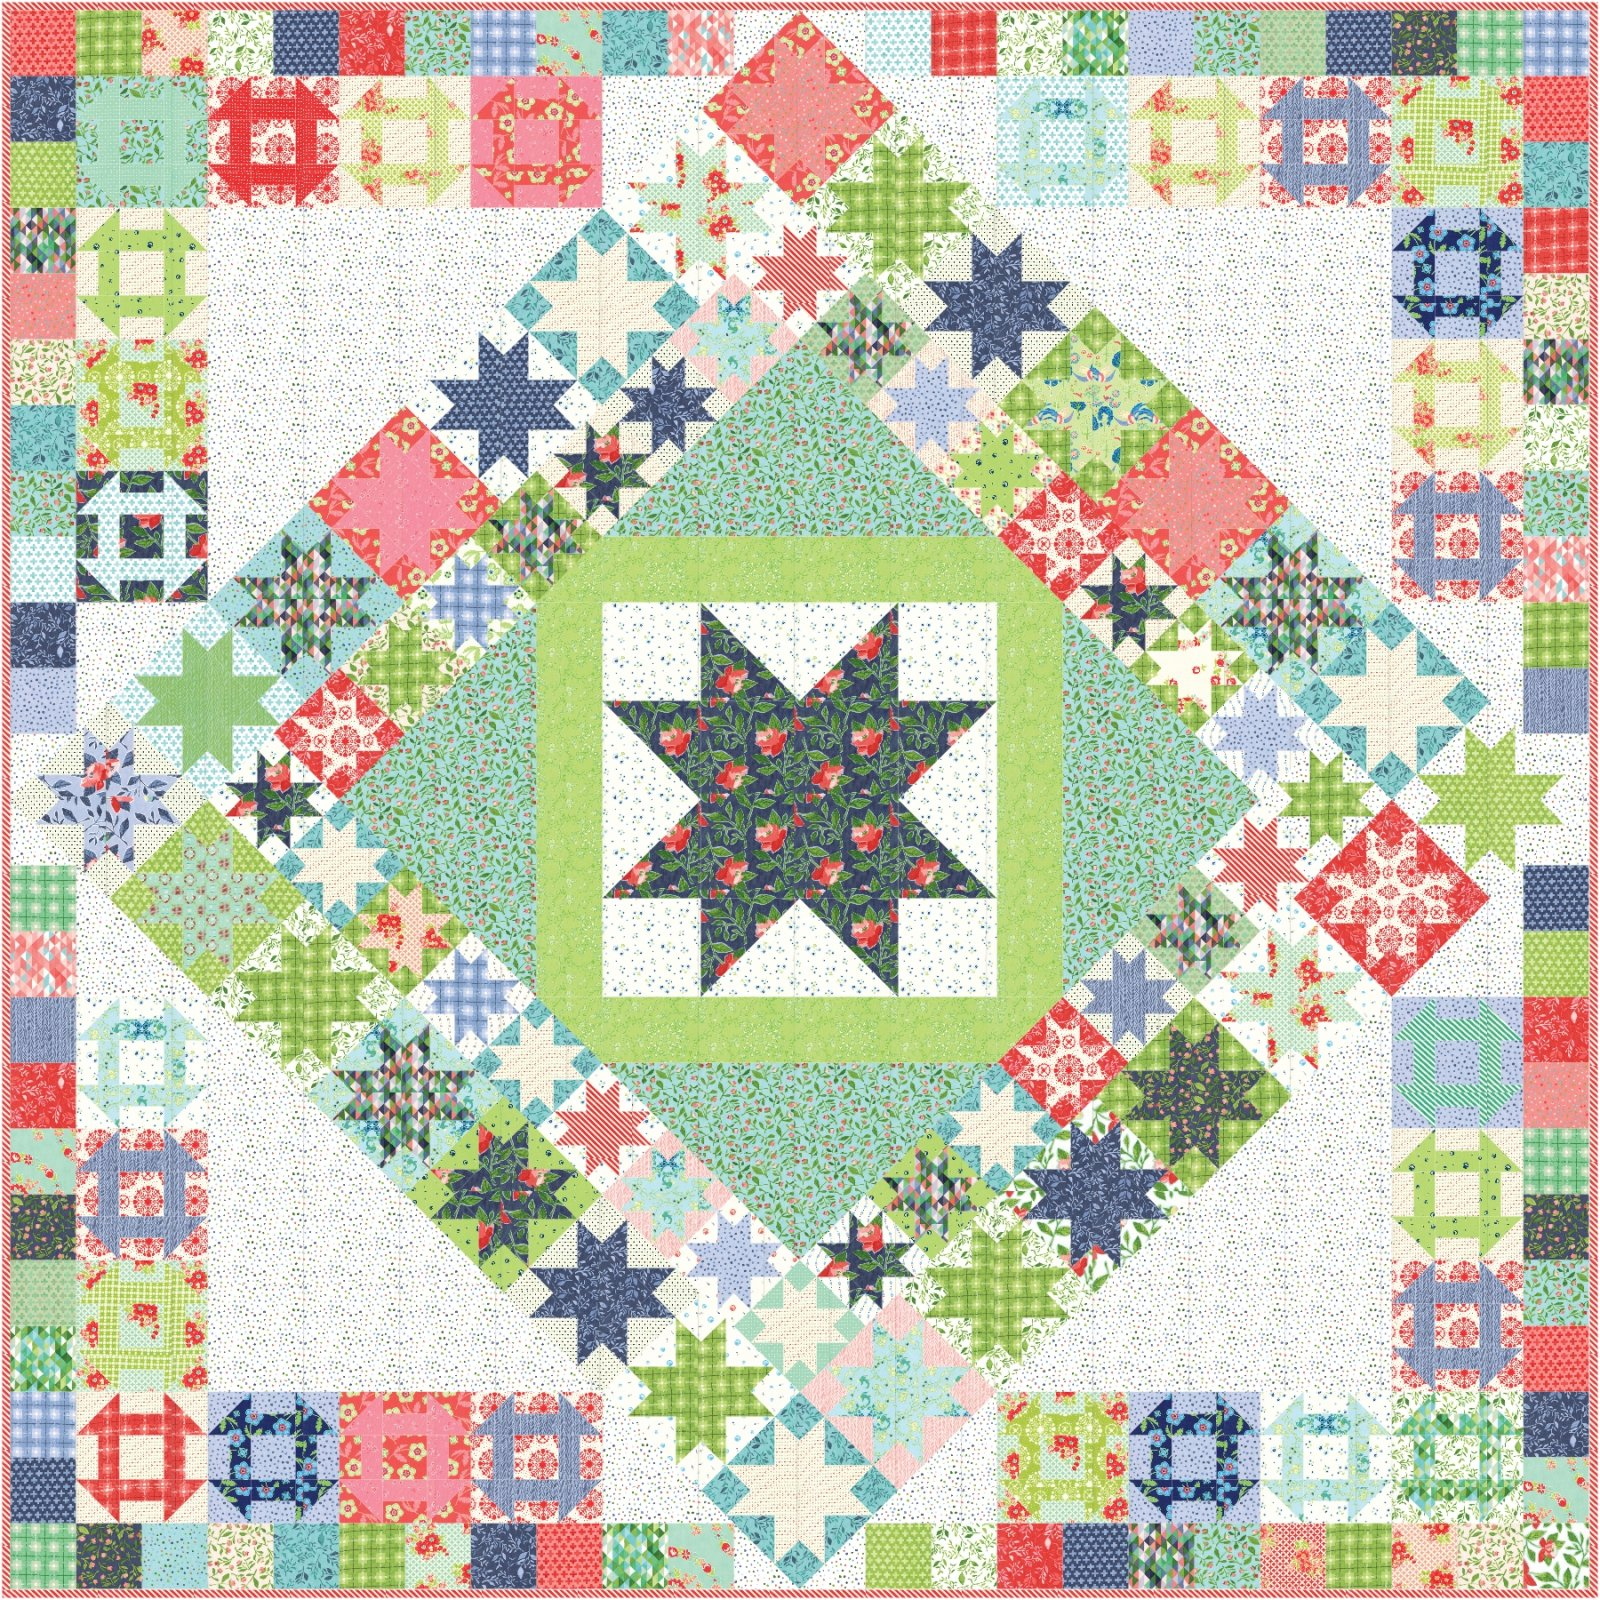 Midsummer Memories add-on pieced border kit